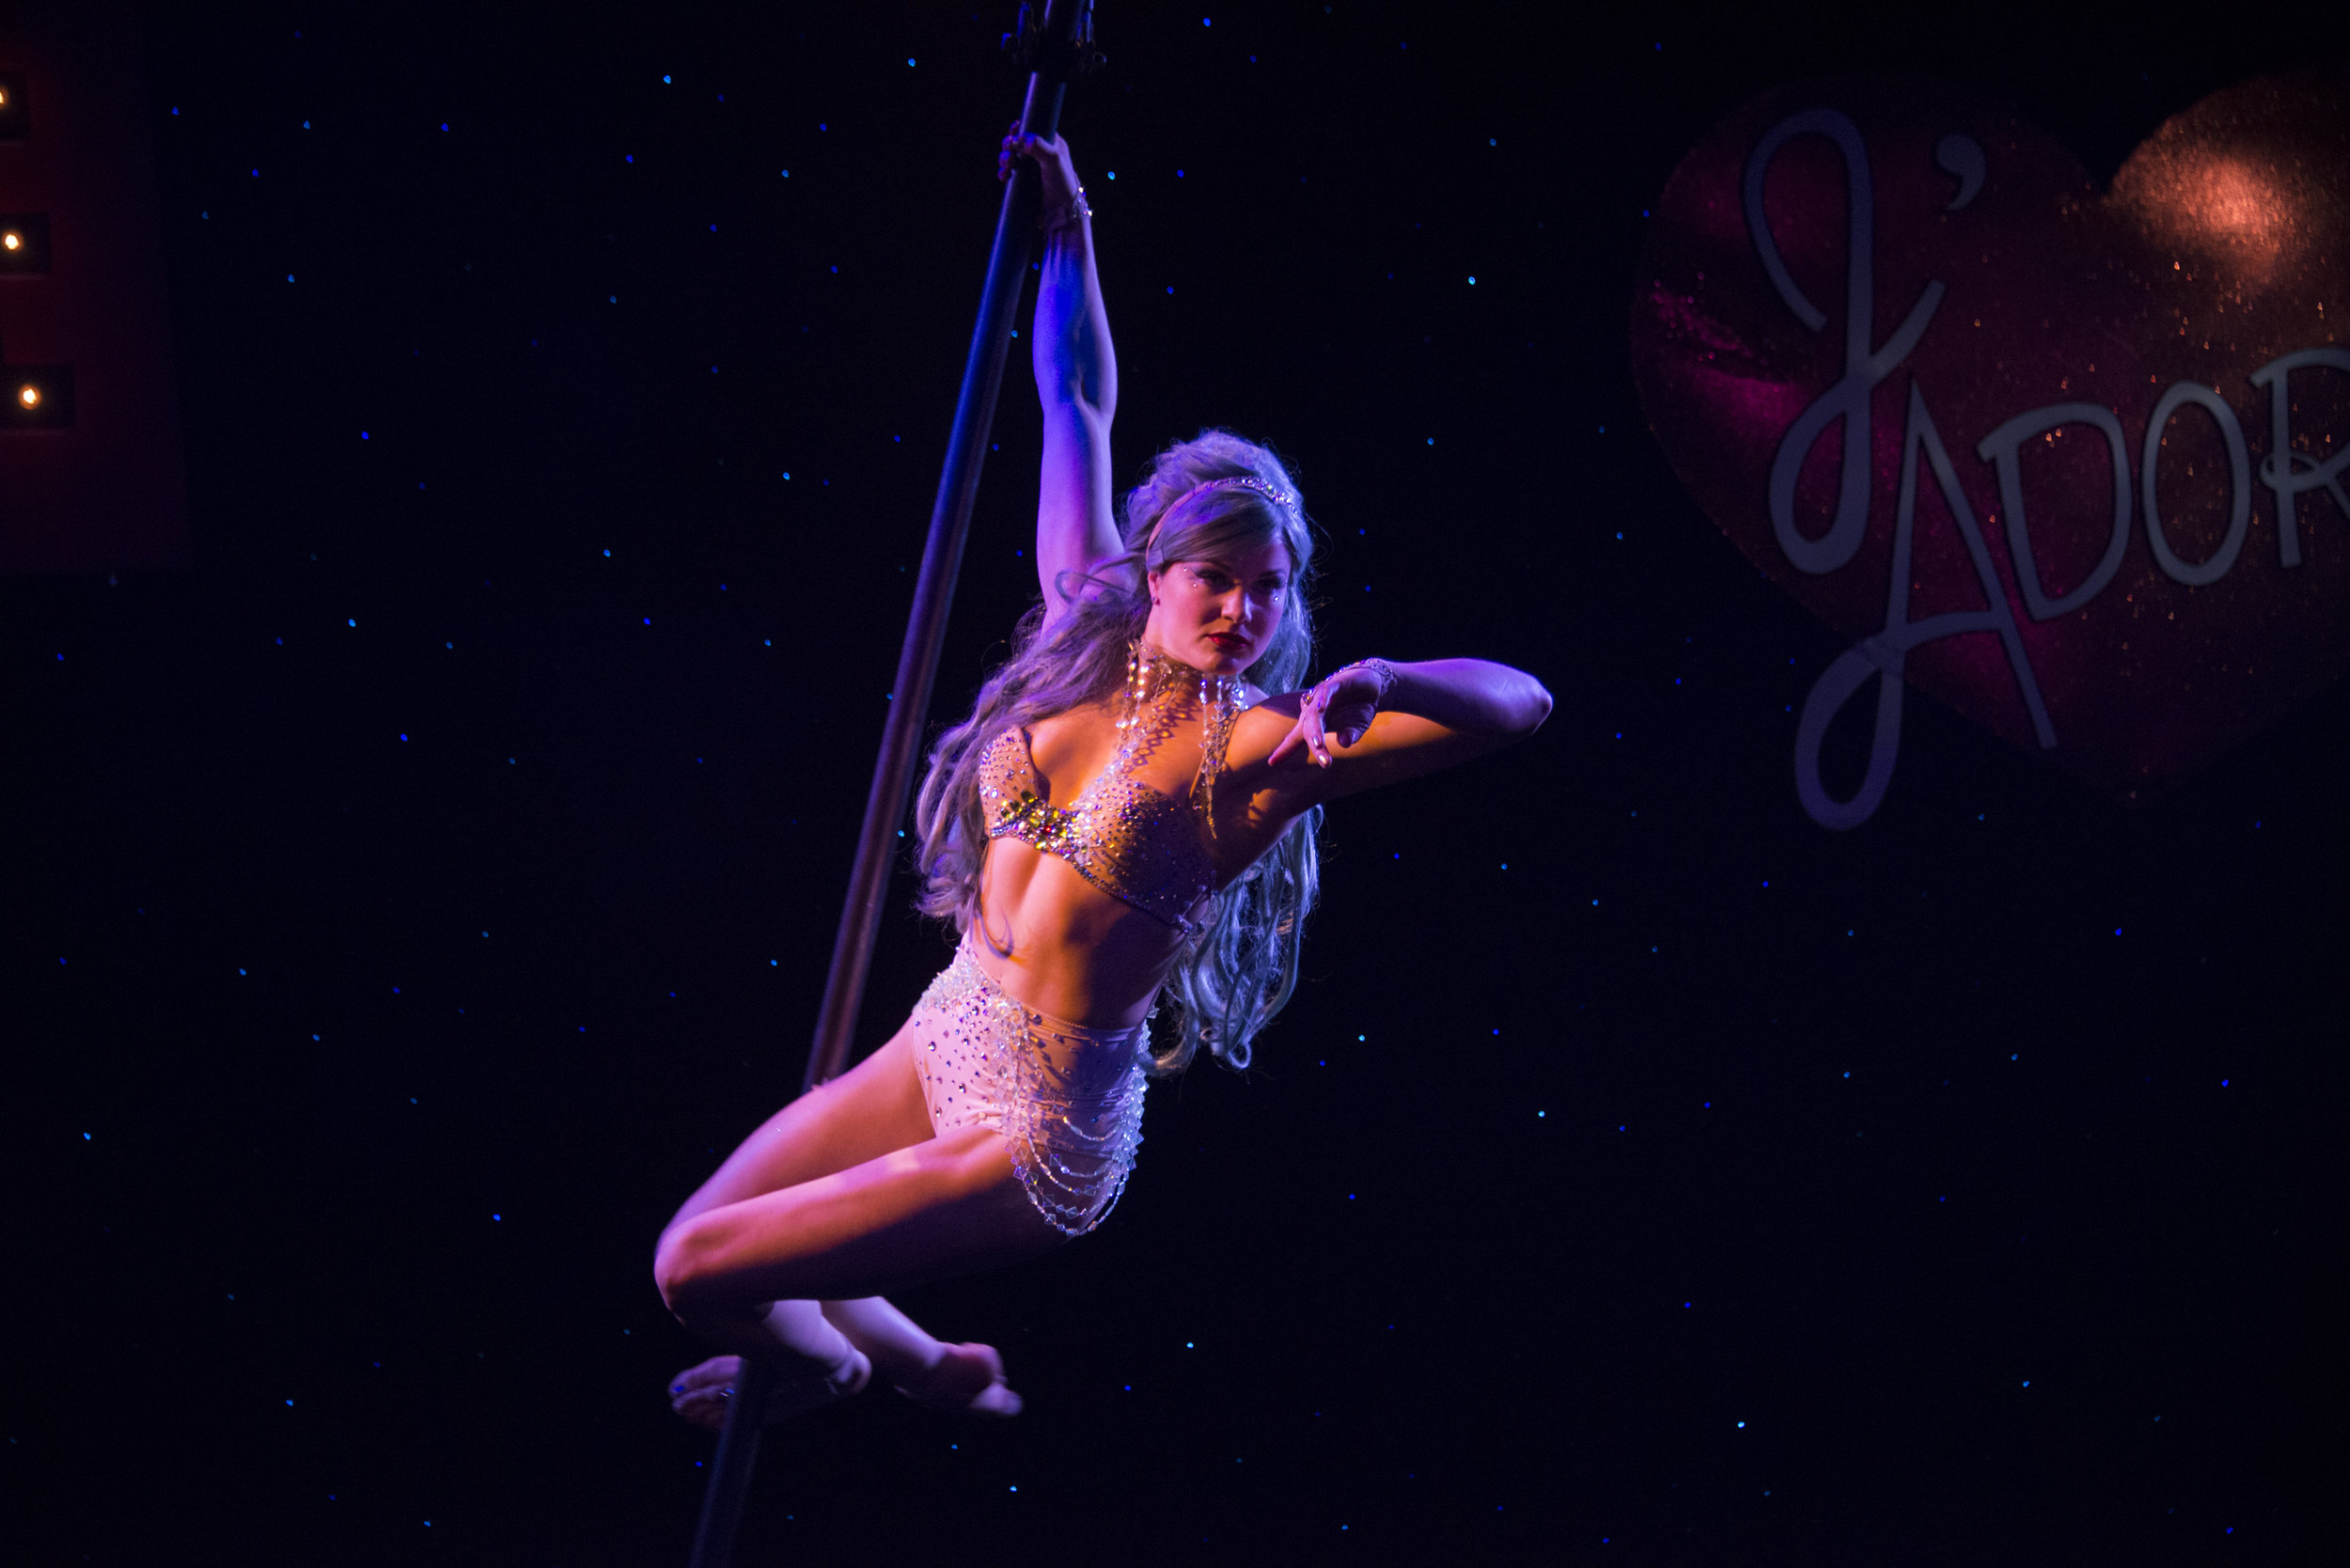 Beyond The Curtain - An Interview with Tanya Brno